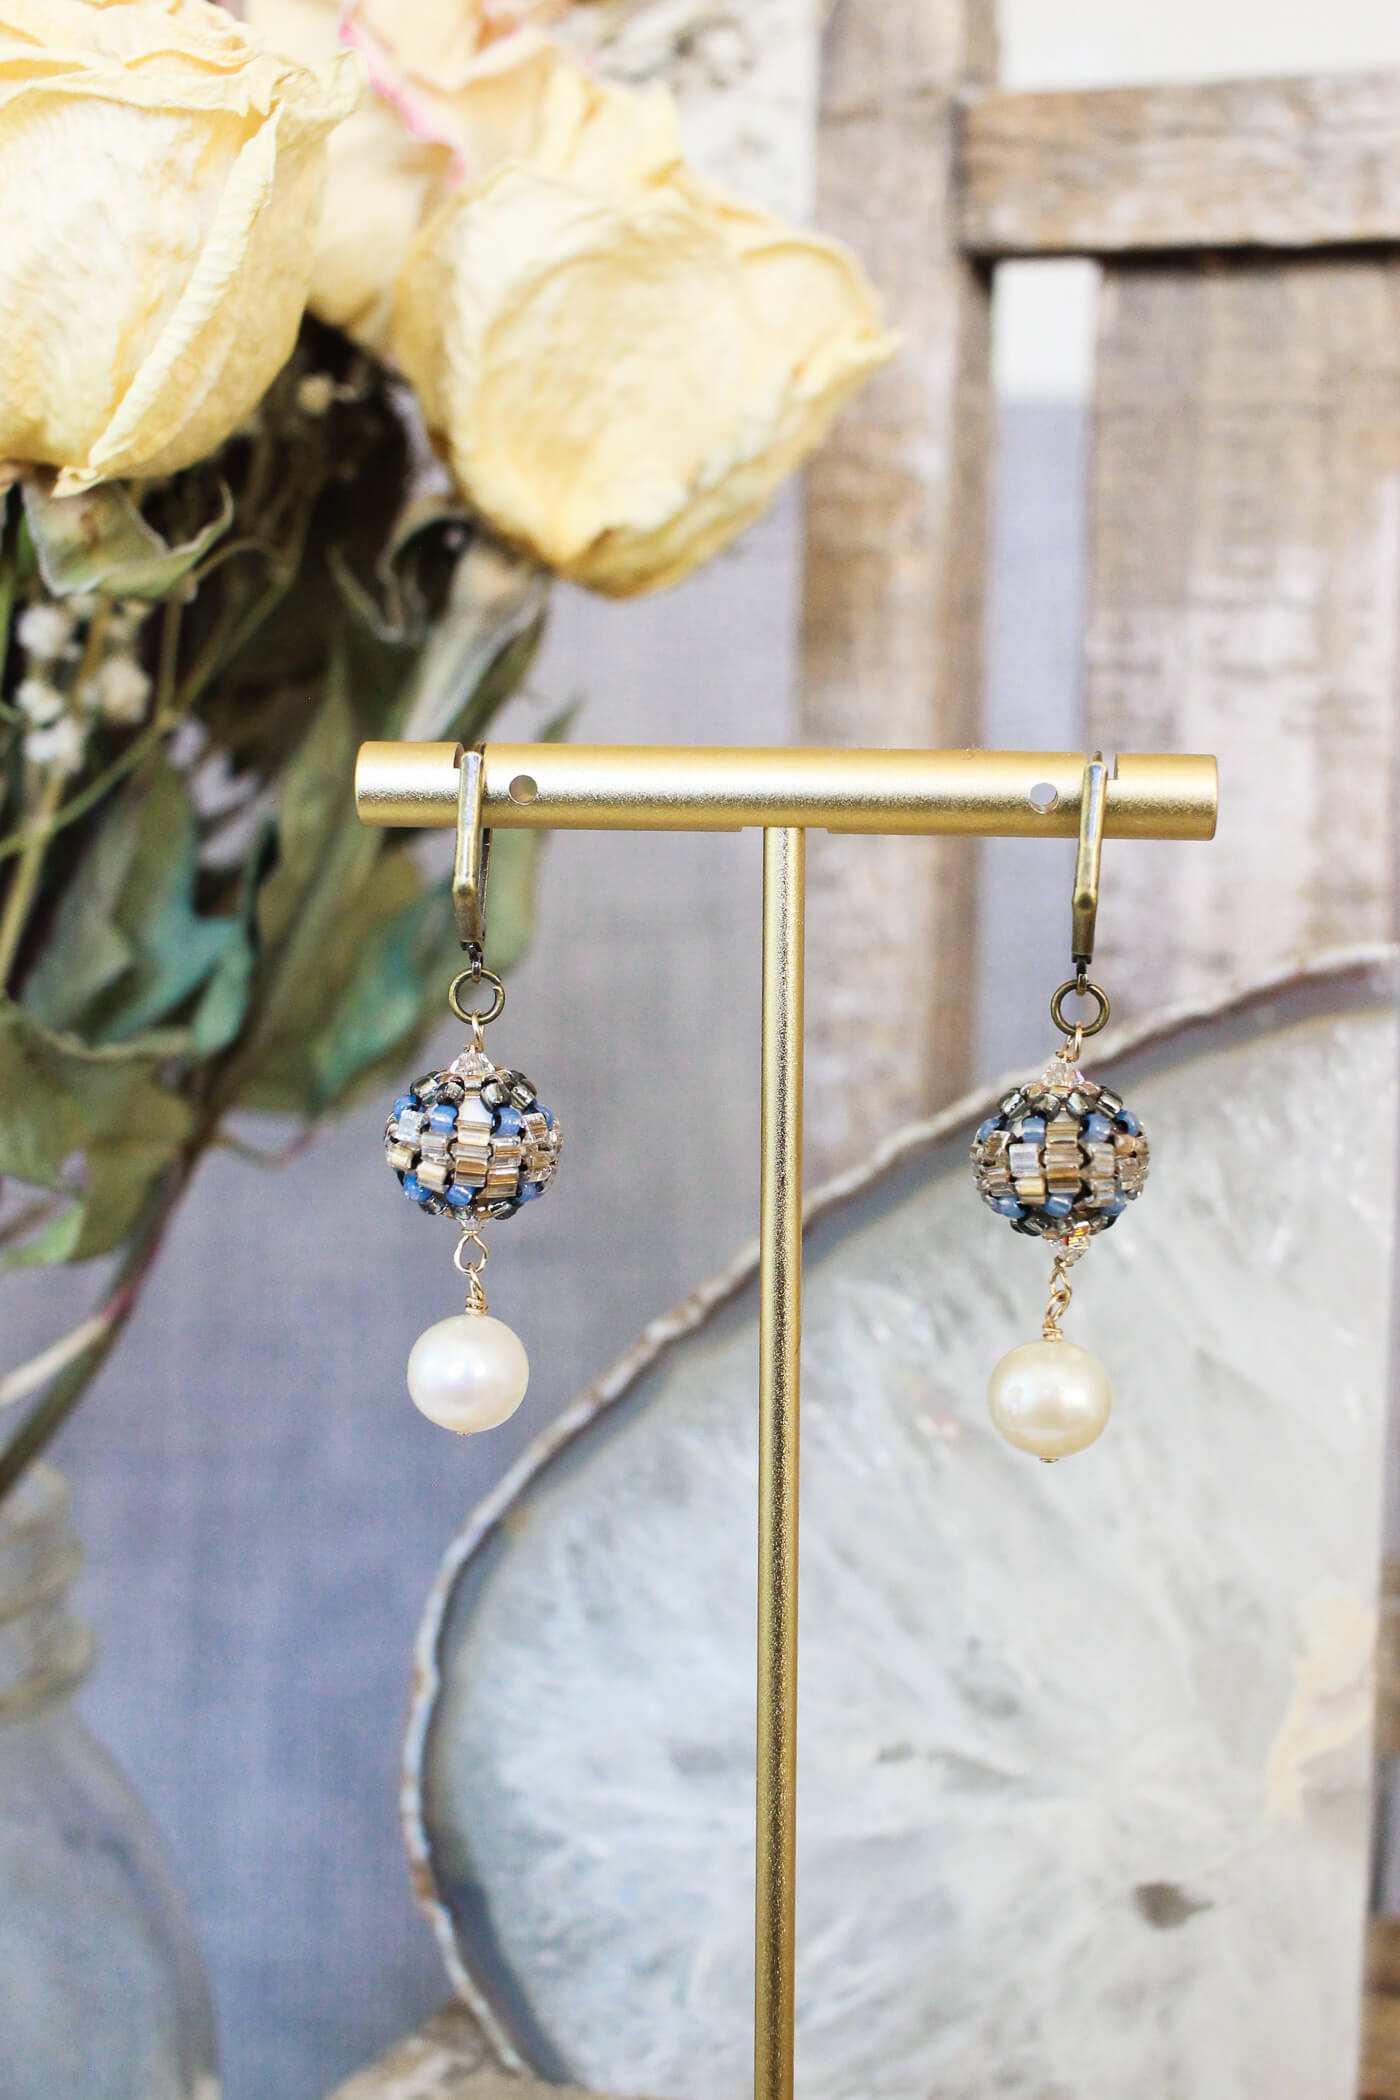 Designer Pearl Drop Earrings with Blue & Gold Bead Embroidery Detail – A Perfect Accessory For A Wedding